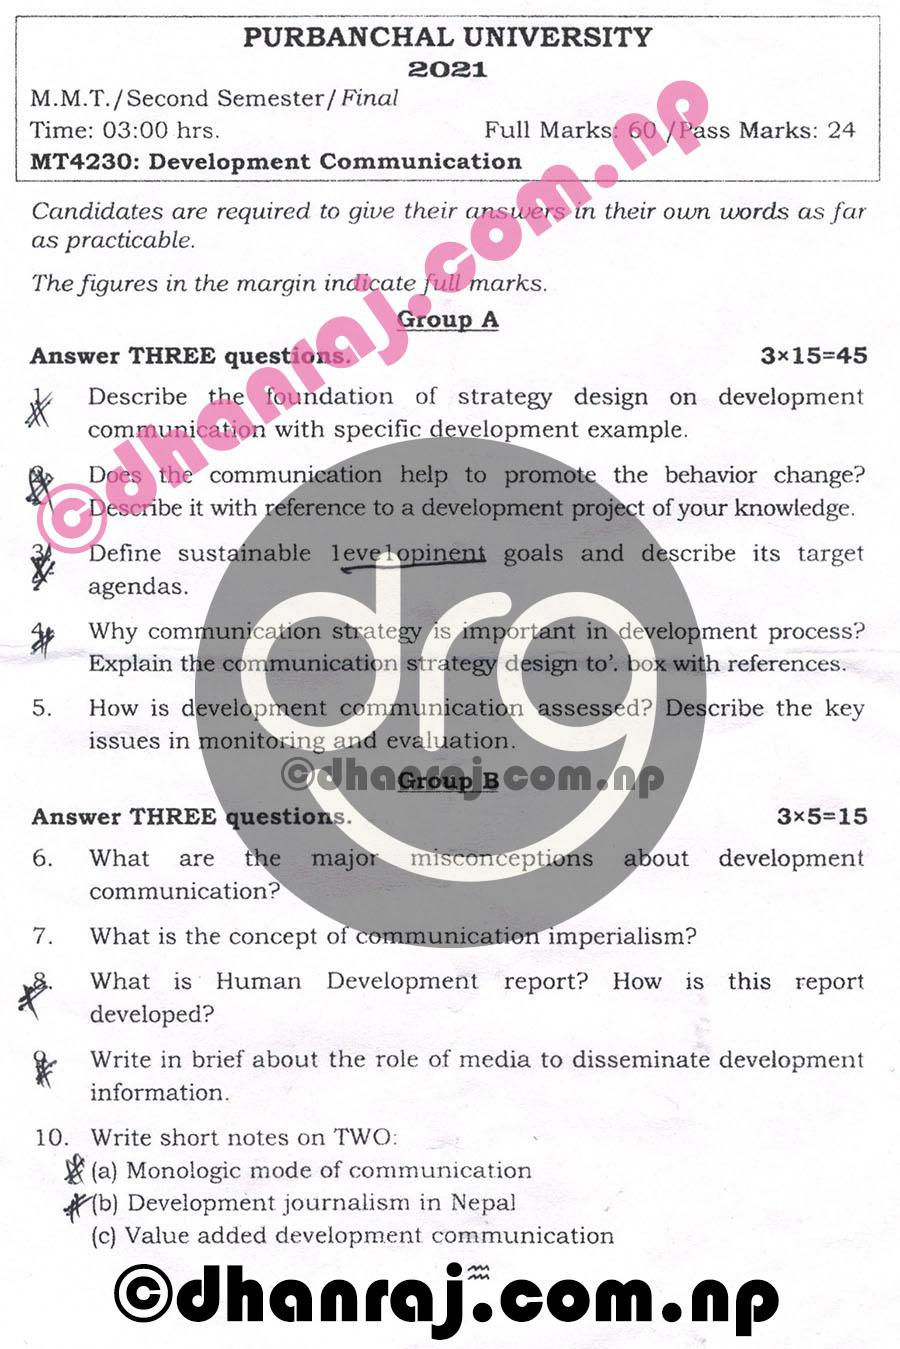 Development-Communication-MT4230-Exam-Question-Paper-2078-2021-Purbanchal-University-PU